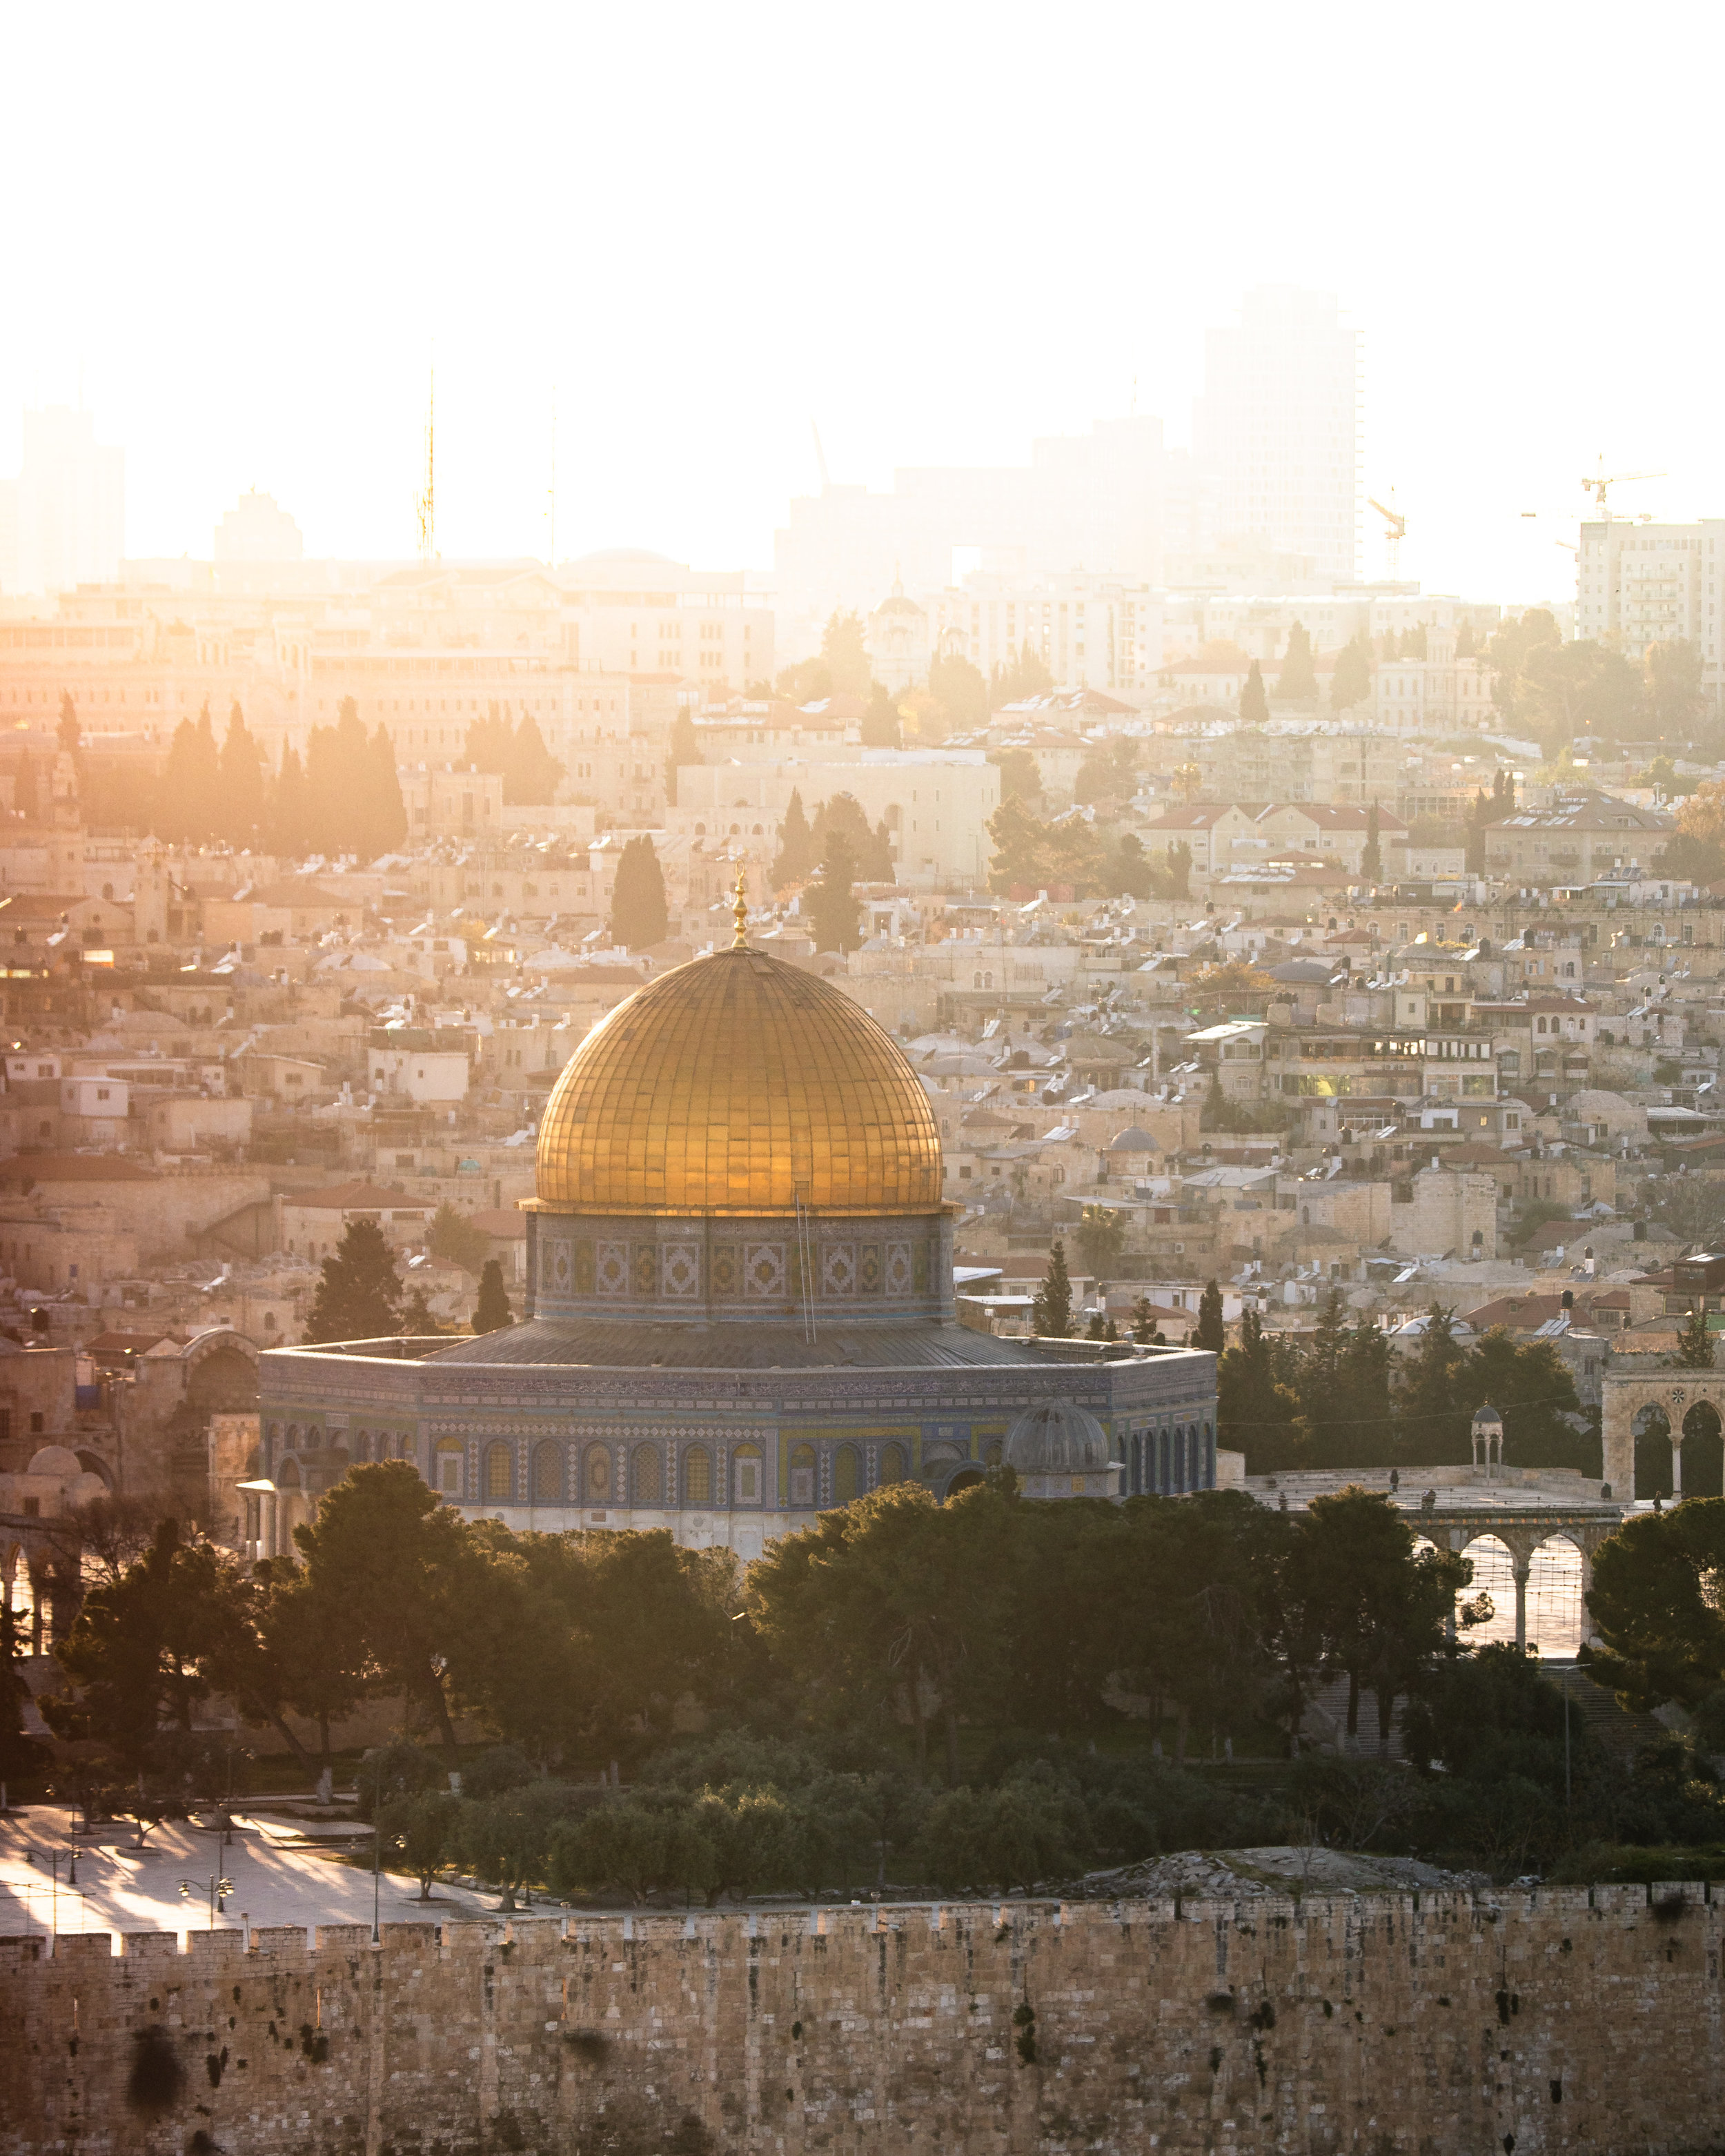 The Dome of Rock from the Mount of Olives